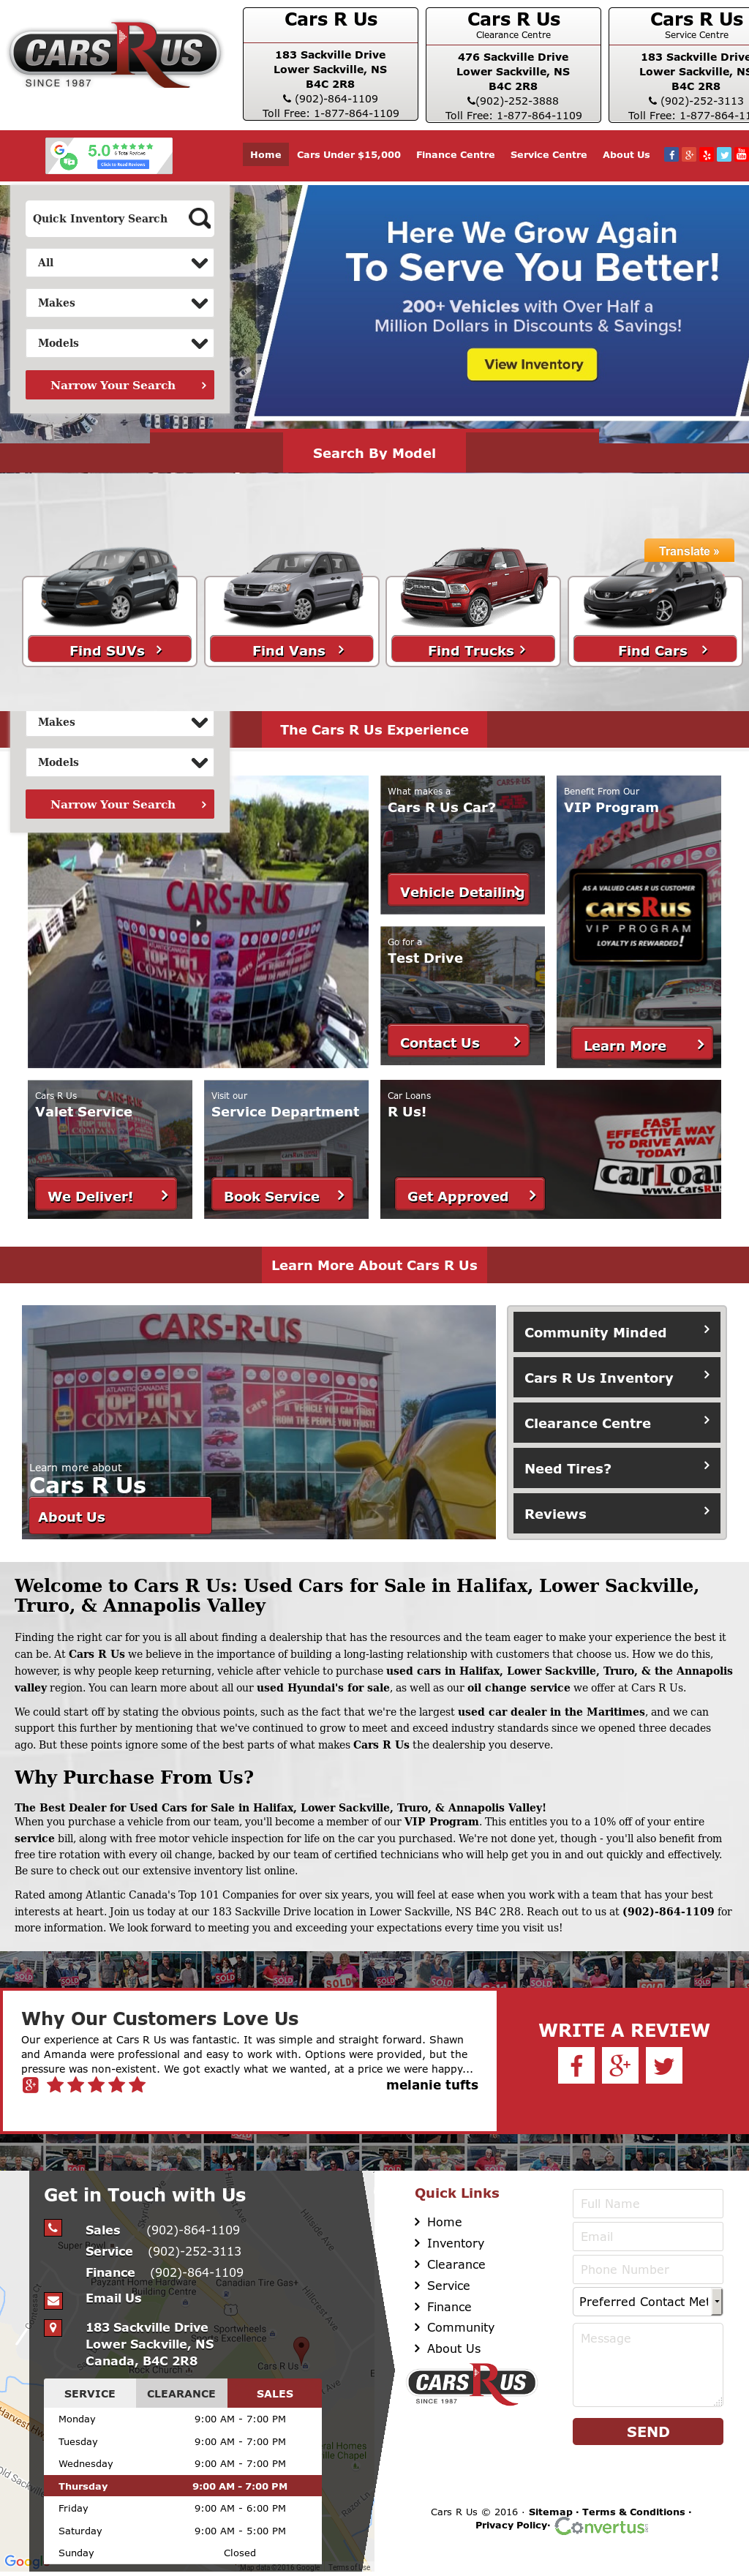 Cars R Us Sackville >> Cars R Us Fan Page Competitors Revenue And Employees Owler